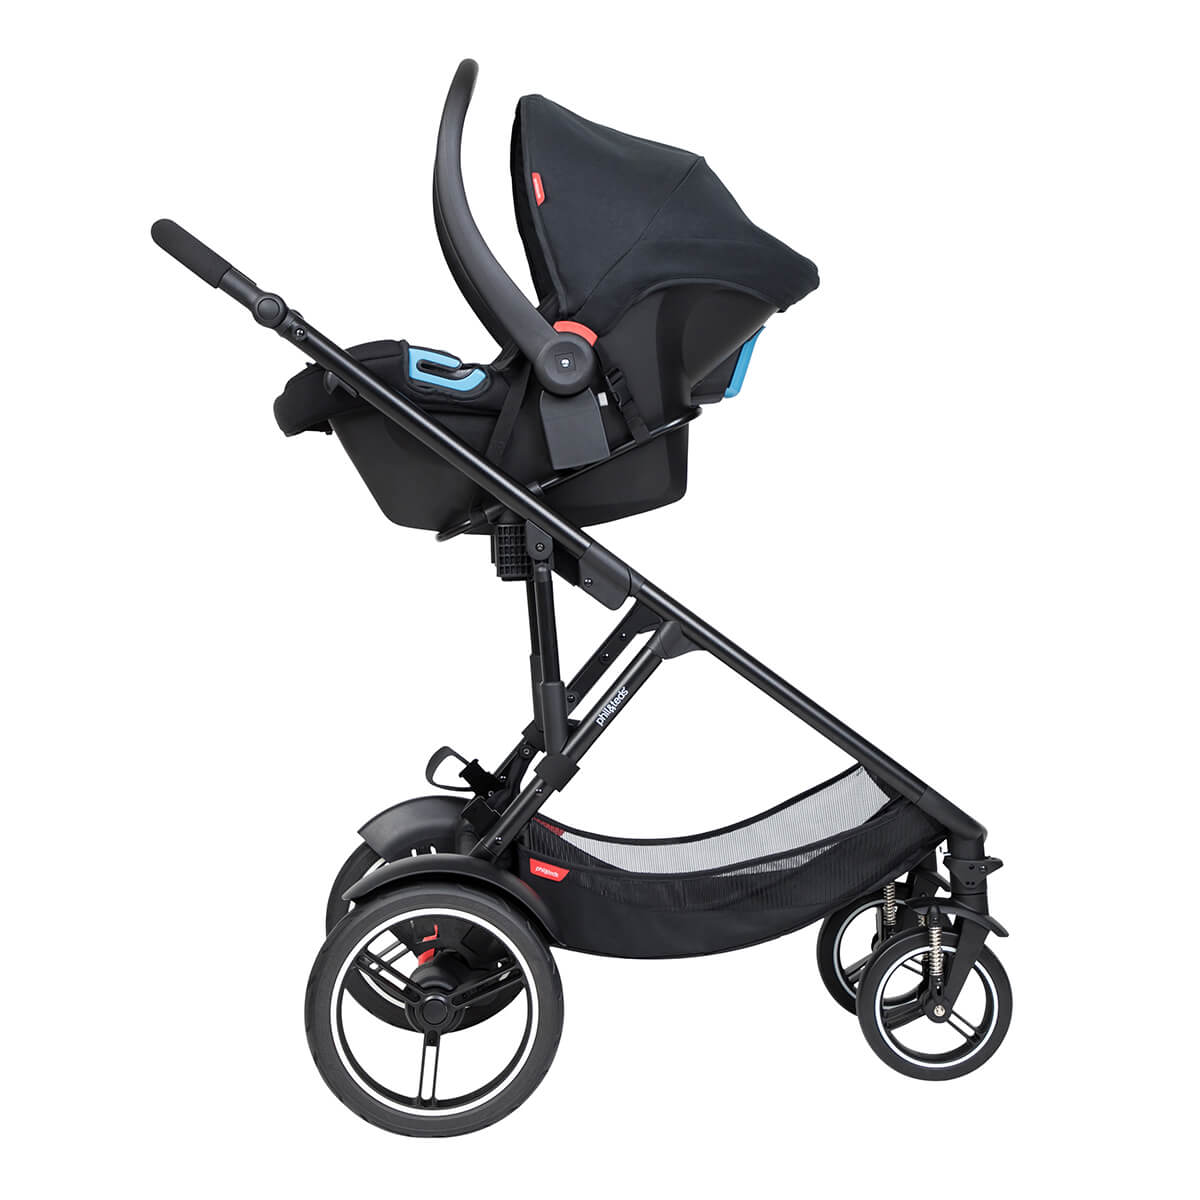 https://cdn.accentuate.io/4509867409505/19793938874538/philteds-voyager-buggy-with-travel-system-in-parent-facing-mode-v1626485364361.jpg?1200x1200